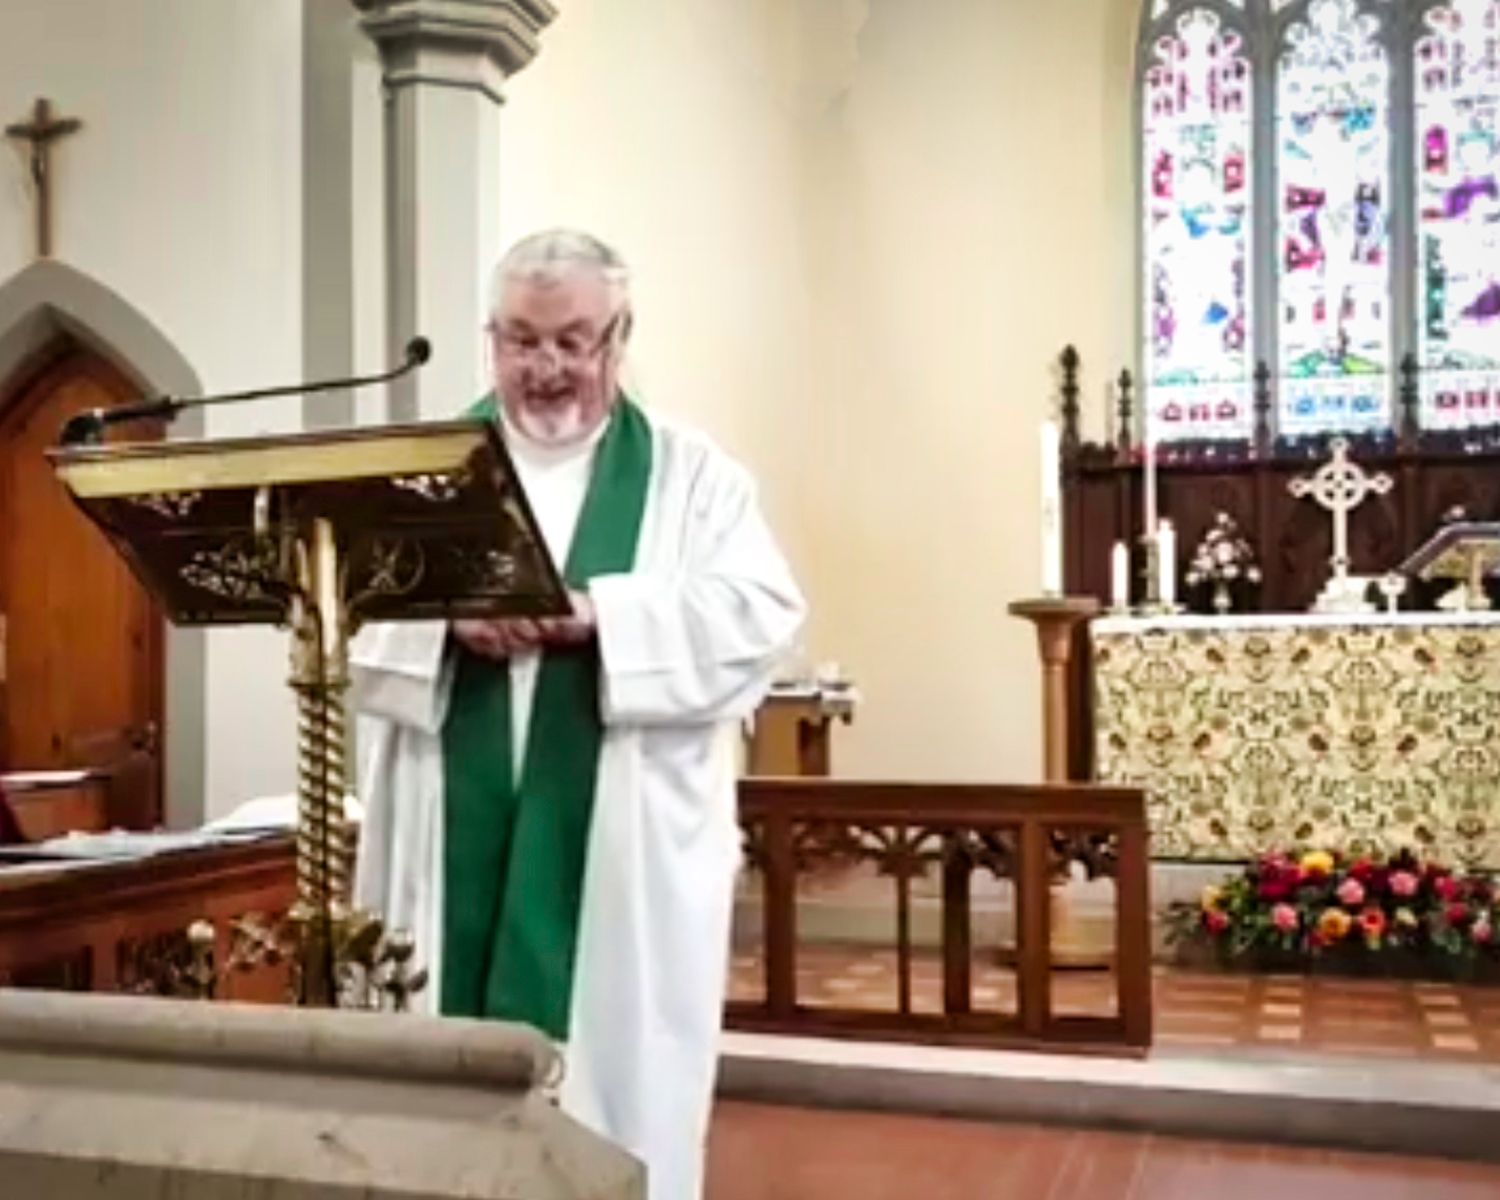 Parish Eucharist with Father Brian on Sunday 25th October 2020.